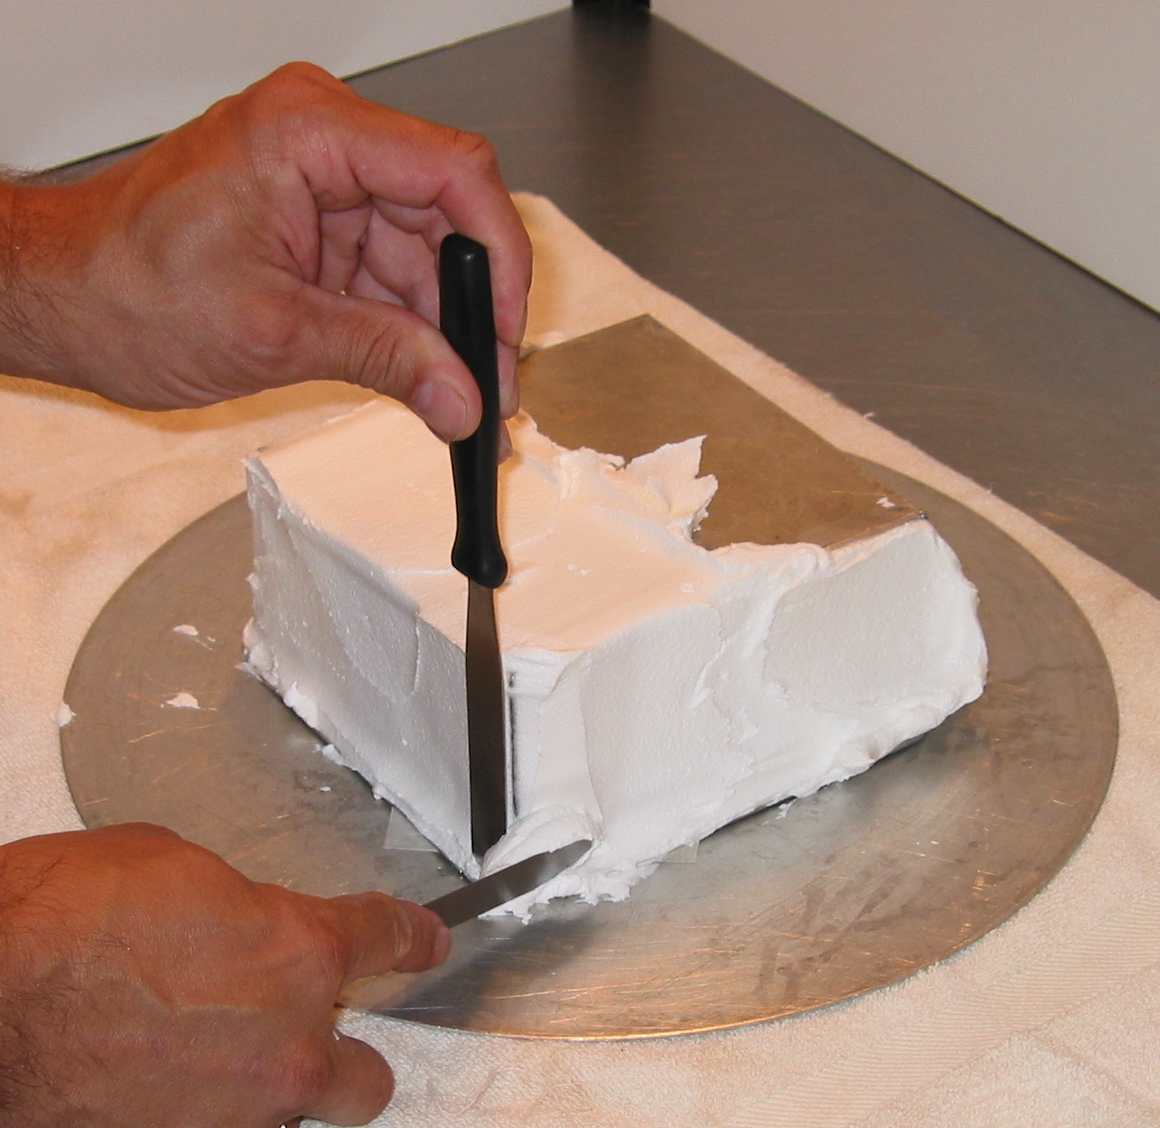 How To Ice A Square Cake With Sharp Edges